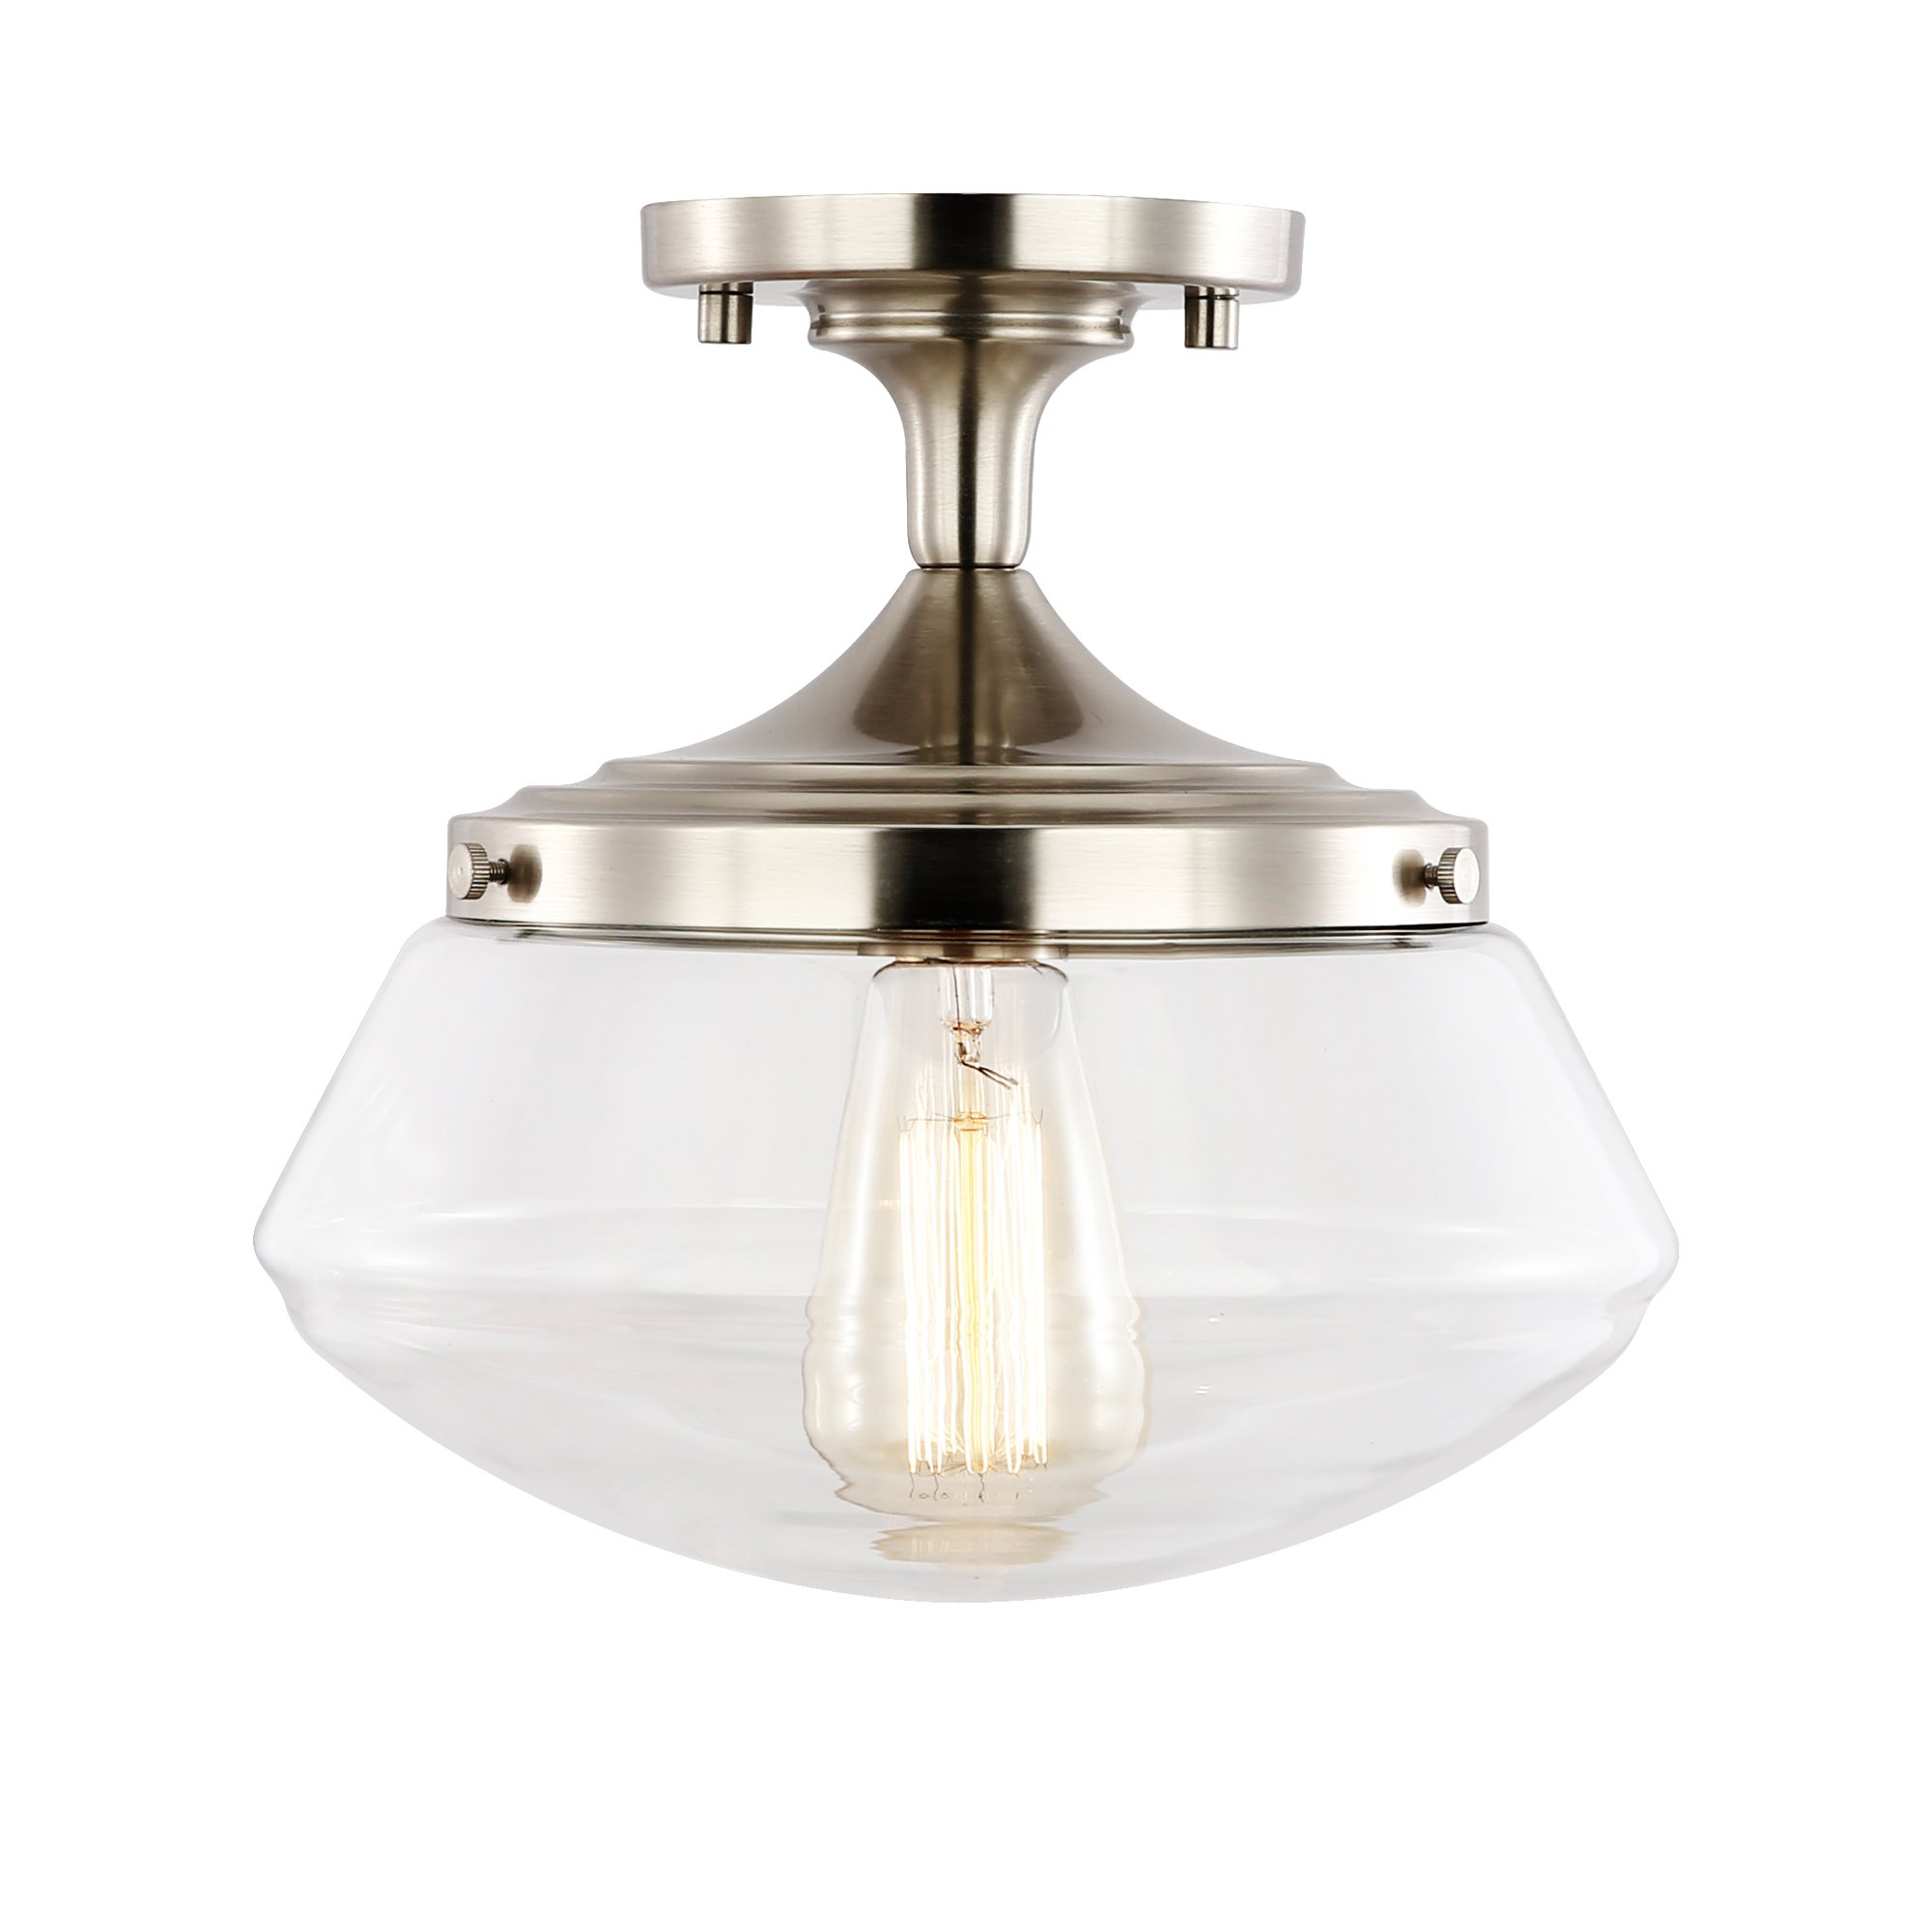 Light Society Crenshaw Flush Mount Ceiling Light, Satin Nickel with Clear Glass Shade, Vintage Industrial Modern Lighting Fixture (LS-C246-SN)